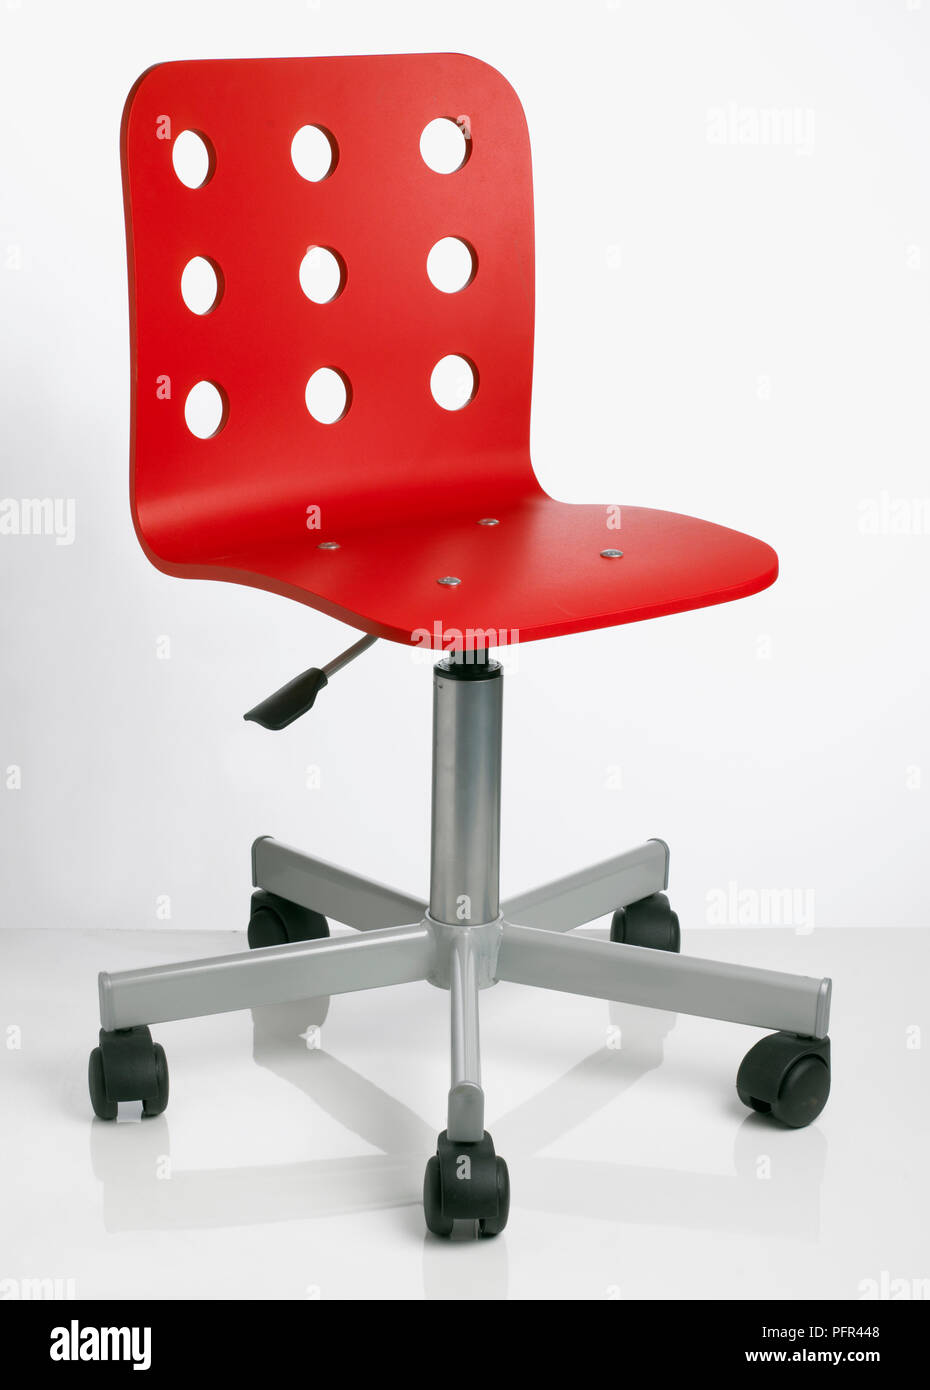 Fauteuil Pivotant Rouge Swivel Chair Photos Swivel Chair Images Alamy